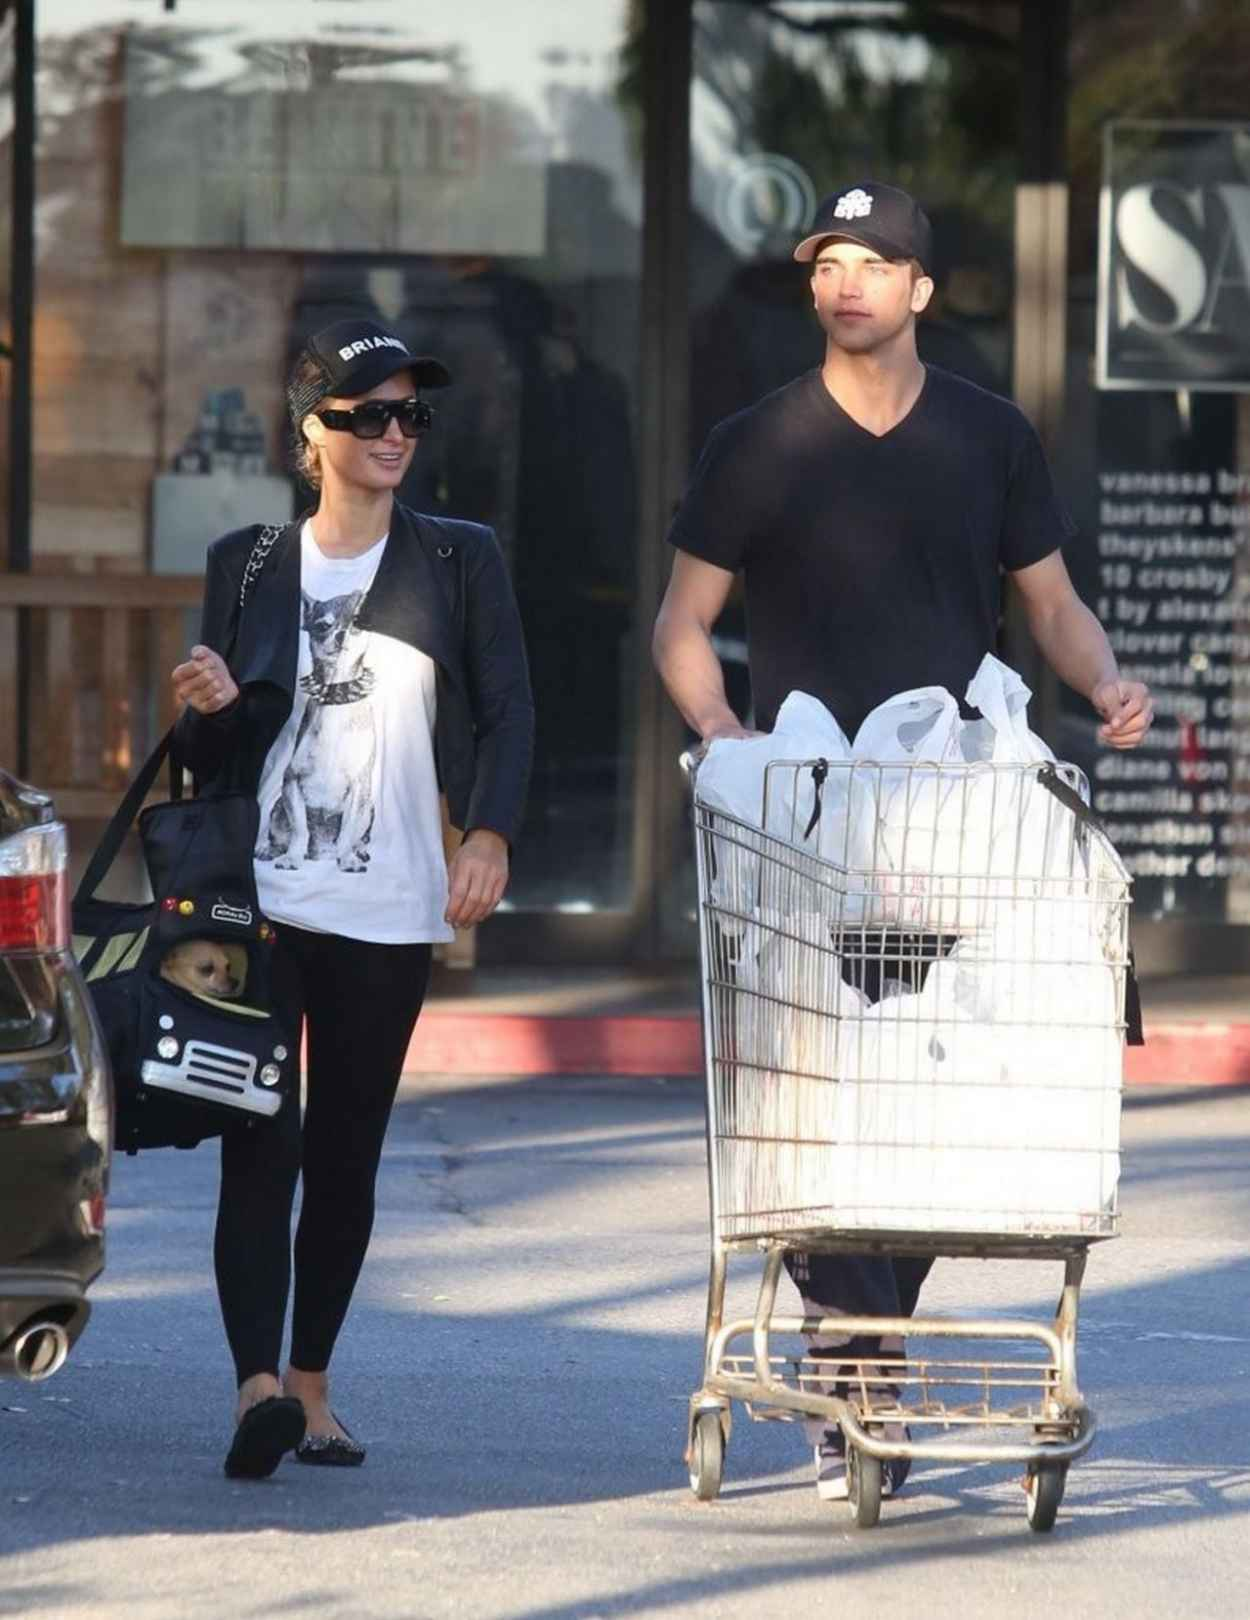 Paris Hilton and River Viiperi (Her Boyfriend) Shop For Groceries - February 2015-1